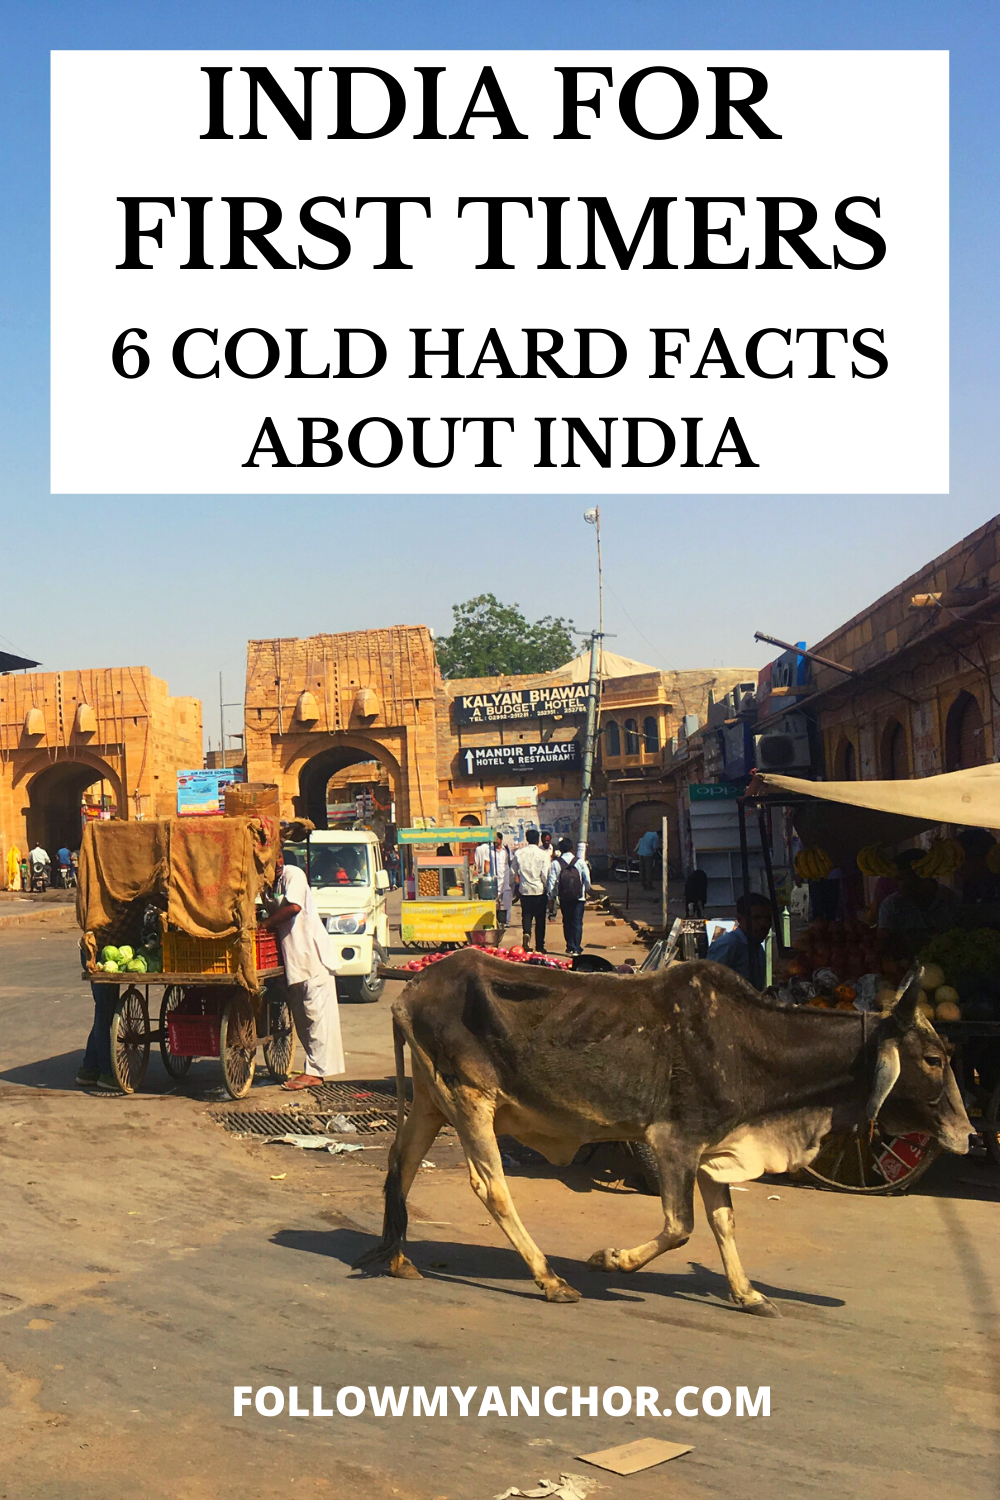 INDIA FOR FIRST TIMERS: 6 COLD HARD FACTS ABOUT INDIA